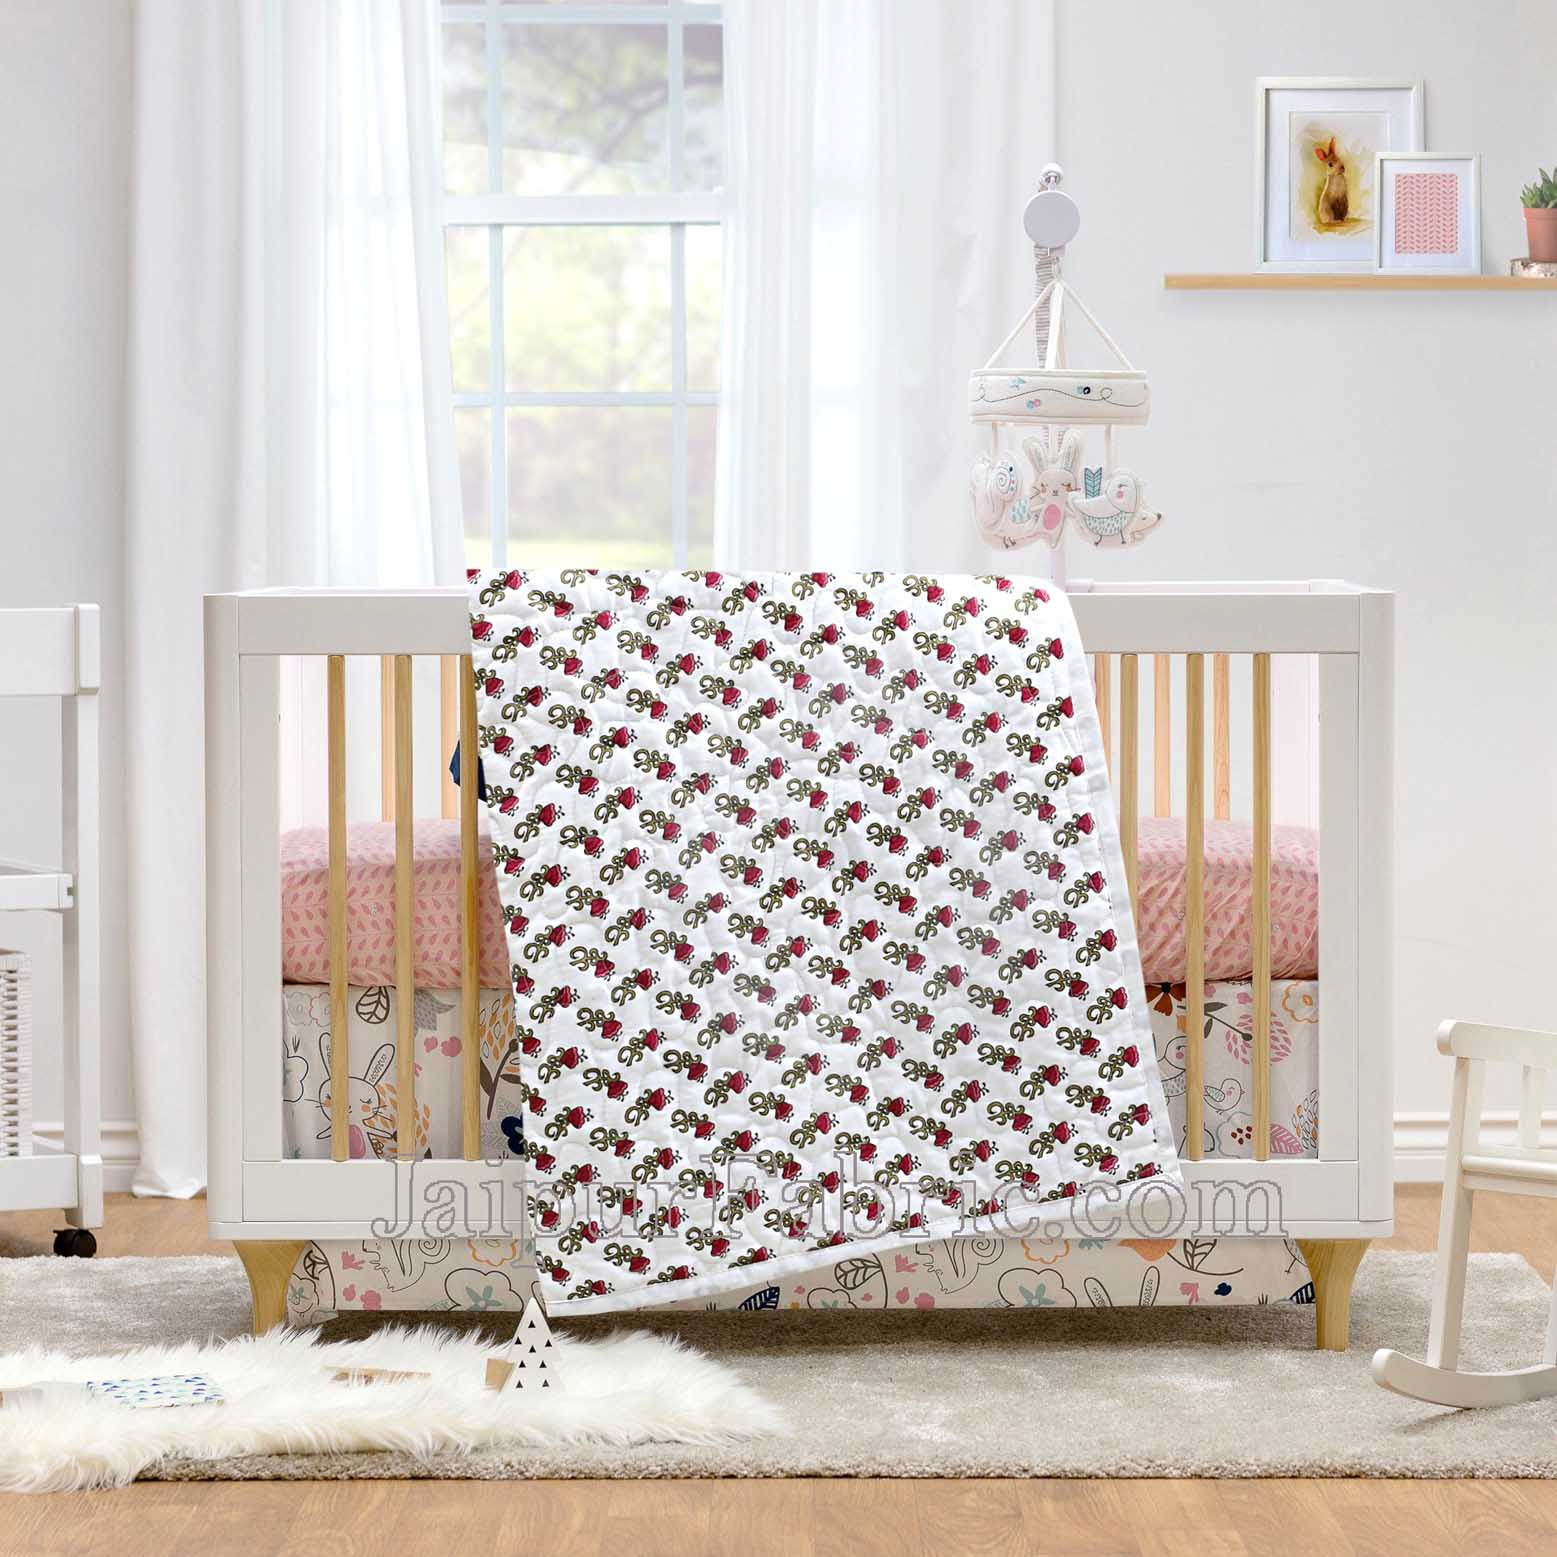 Baby Blanket Newborn Red & Green Soft Crib Comforter and Toddler Swaddling Blankets for Babies 120 x 120 cm Colourful White Base Baby Quilt